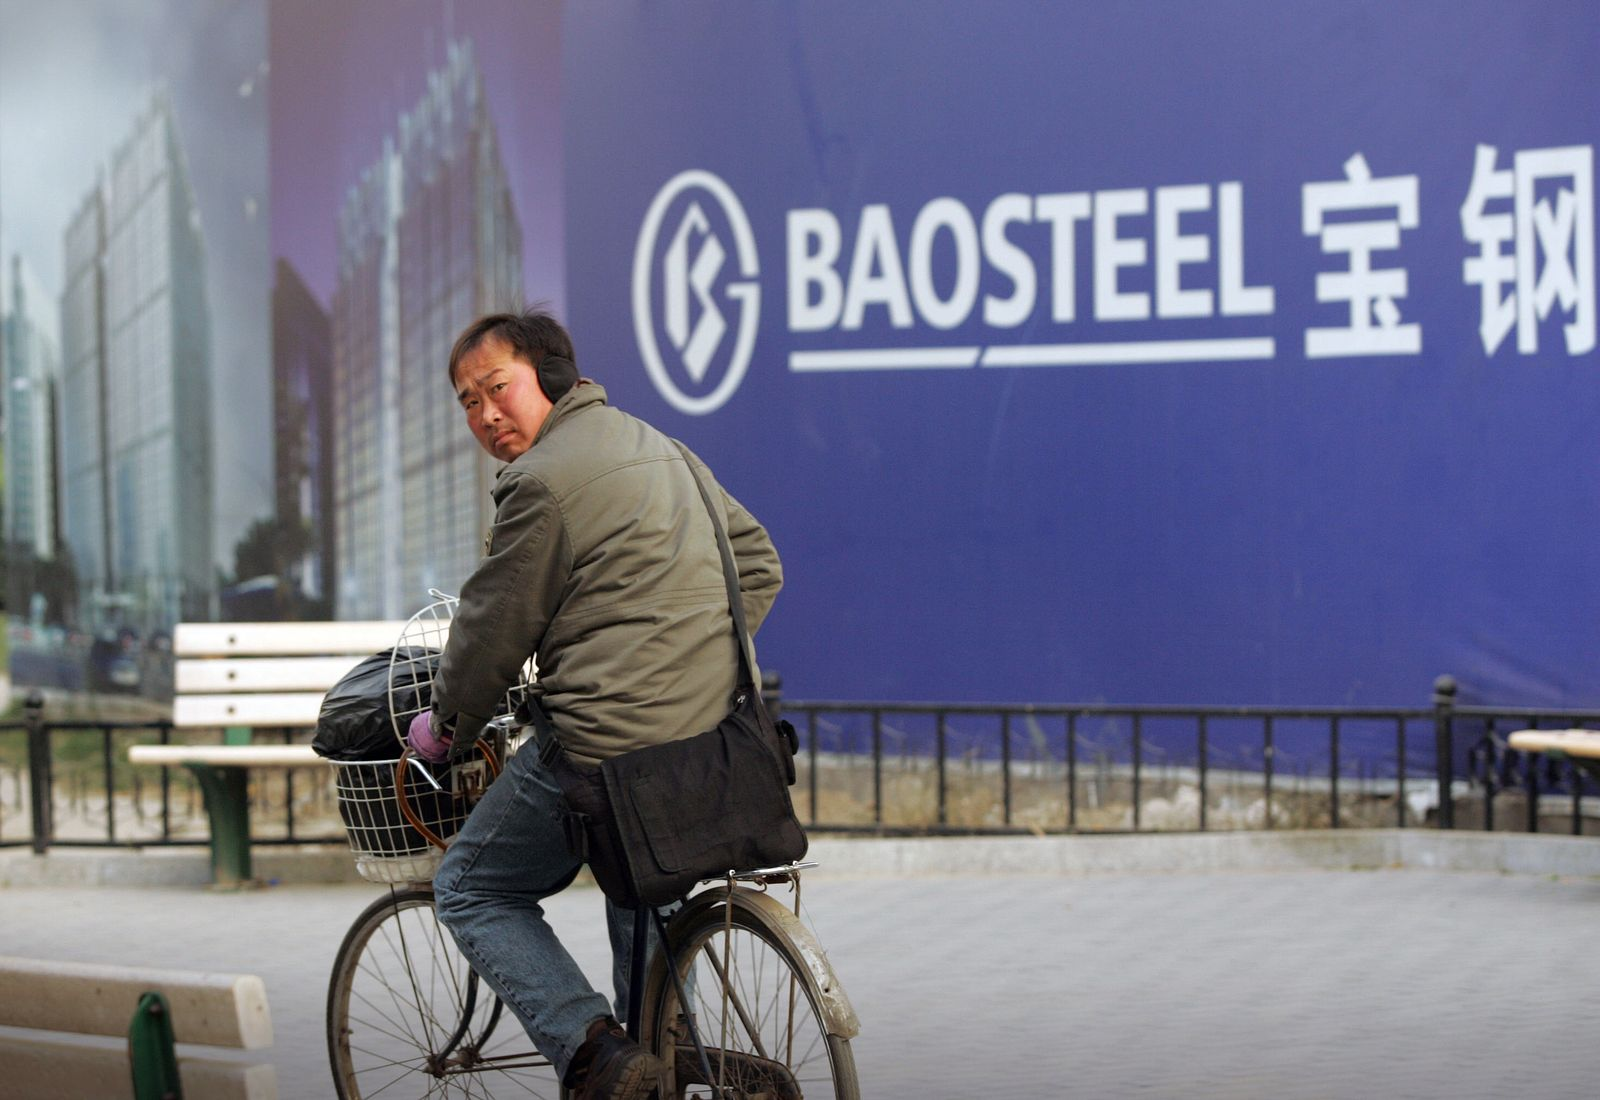 Baosteel / China